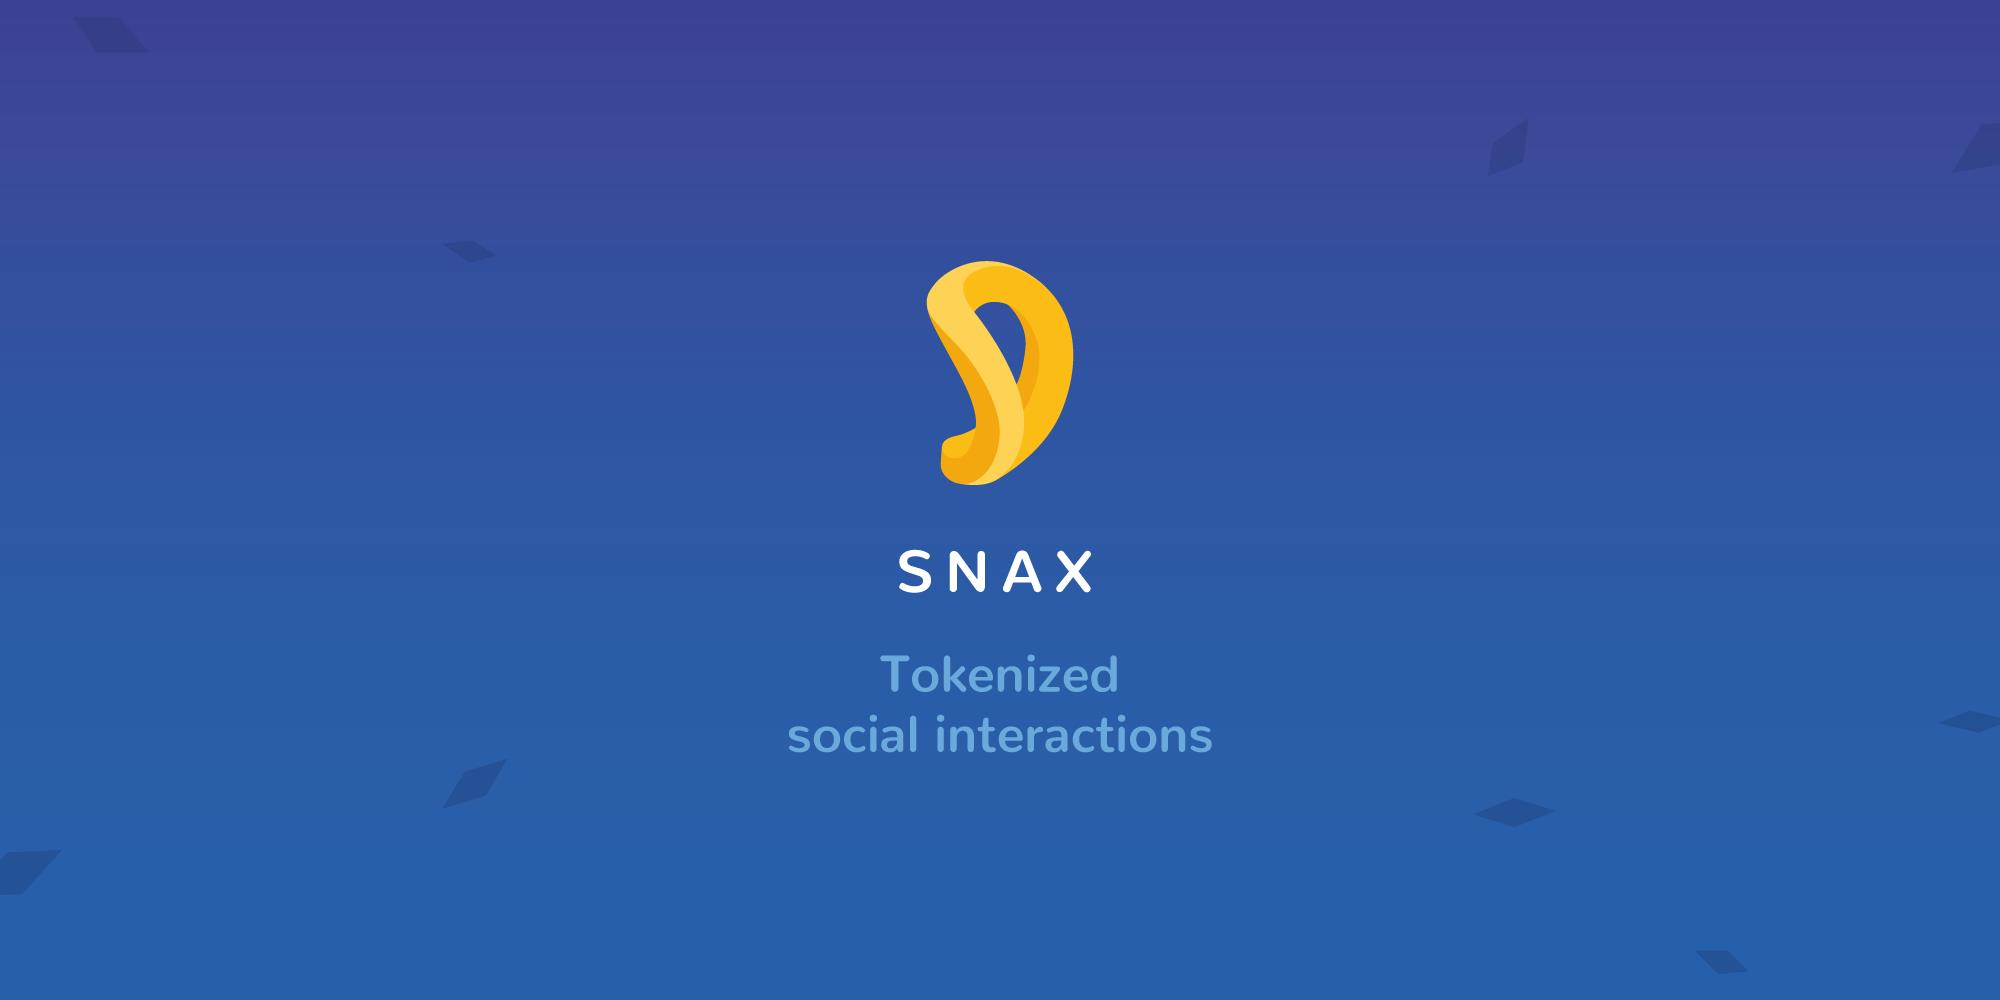 SNAX Brings Real Value To Social Media Content ⋆ ZyCrypto